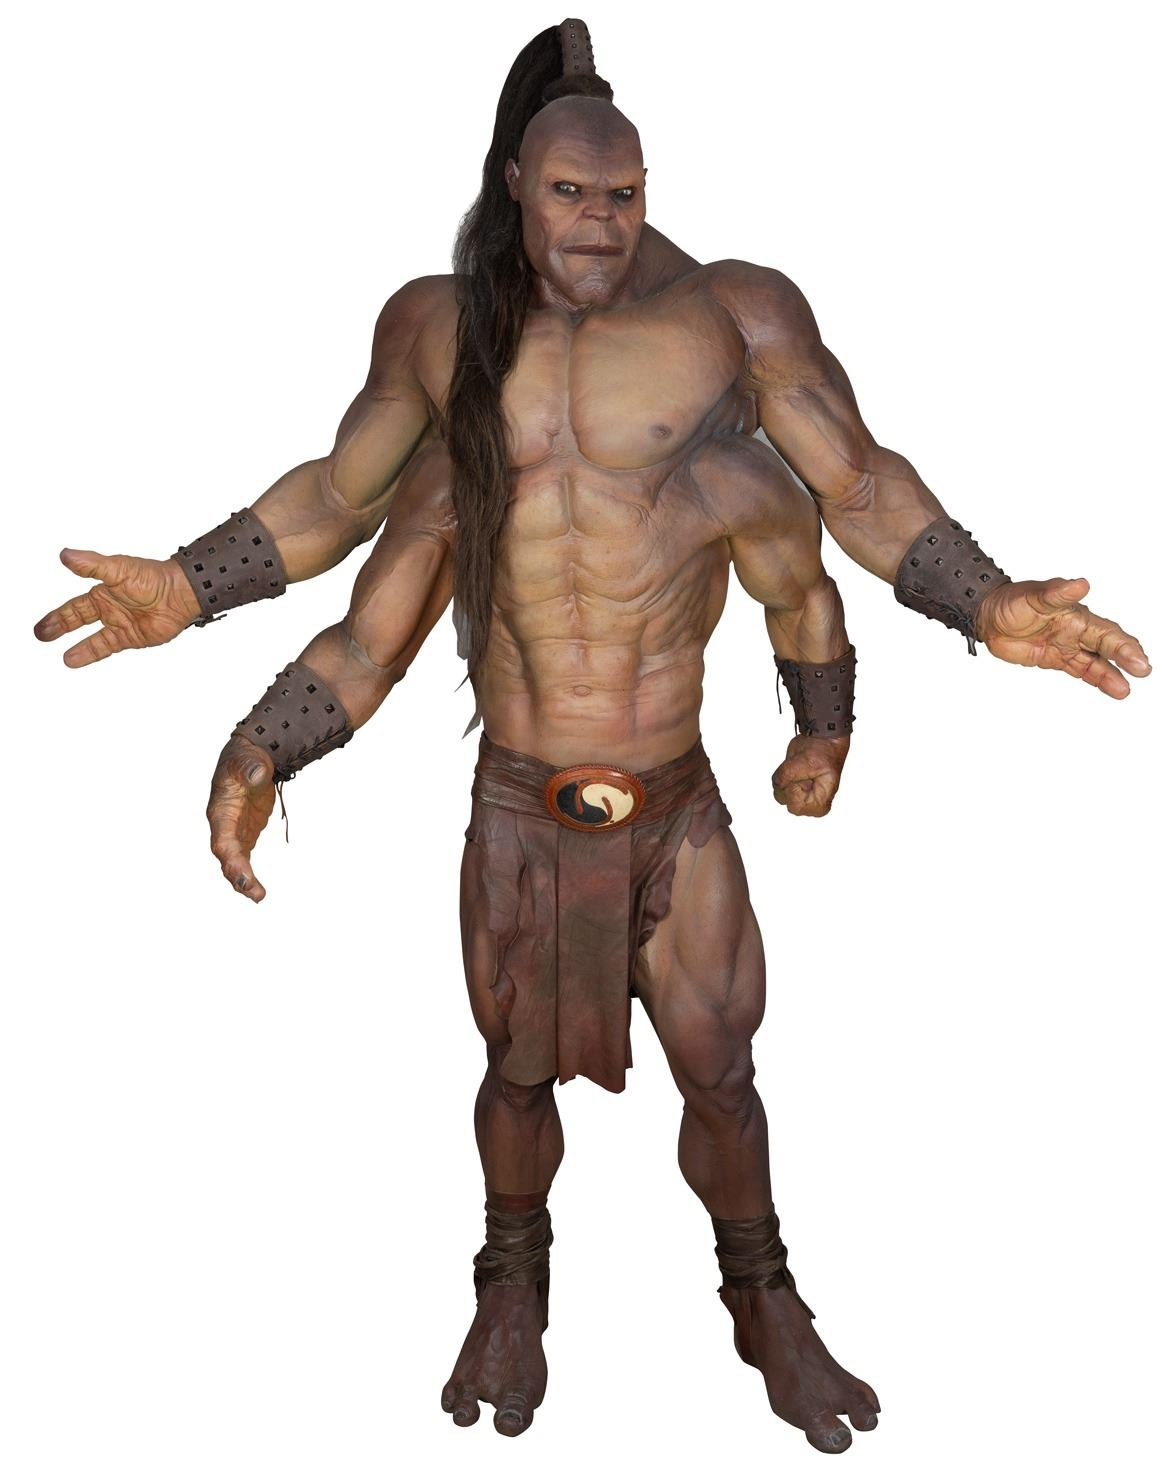 Goro Screen Used Costume From Mortal Kombat On A Lifesize Display